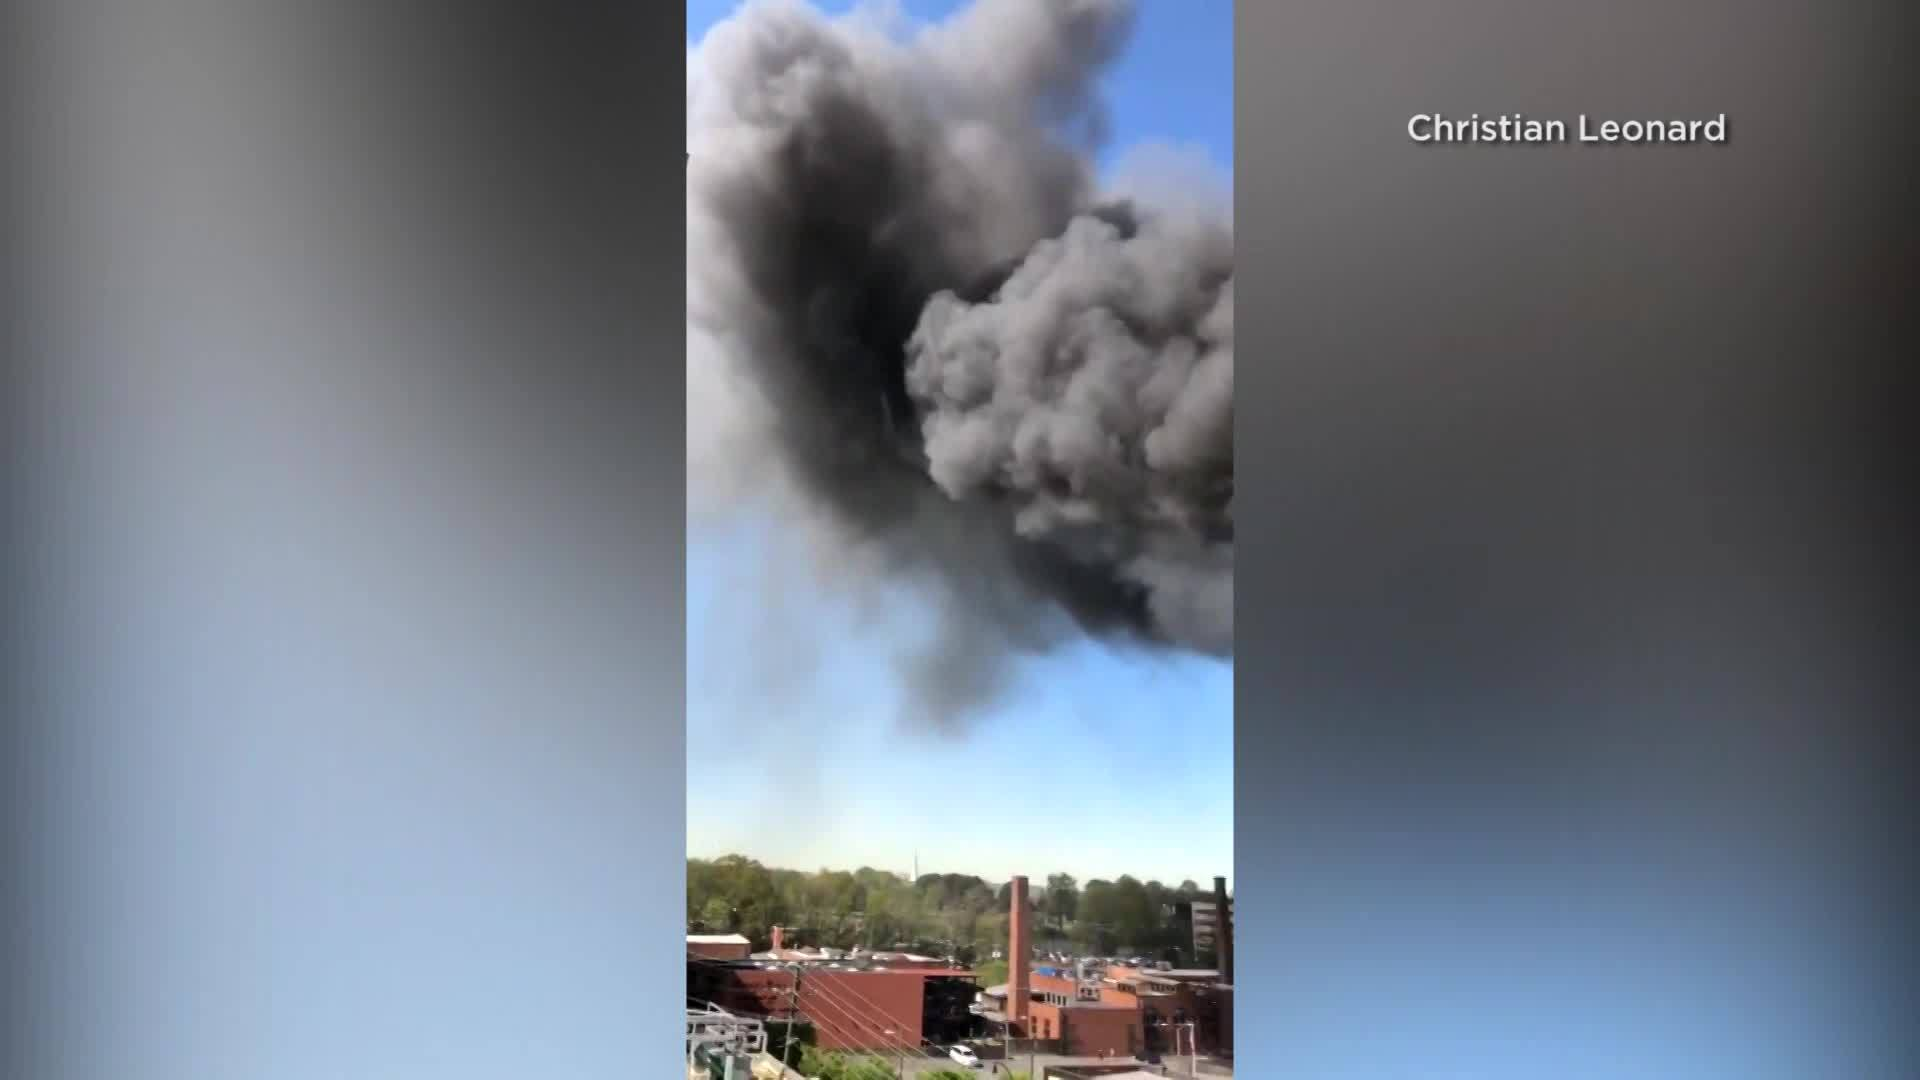 Durham_gas_leak_leads_to_explosion_5_20190410154843